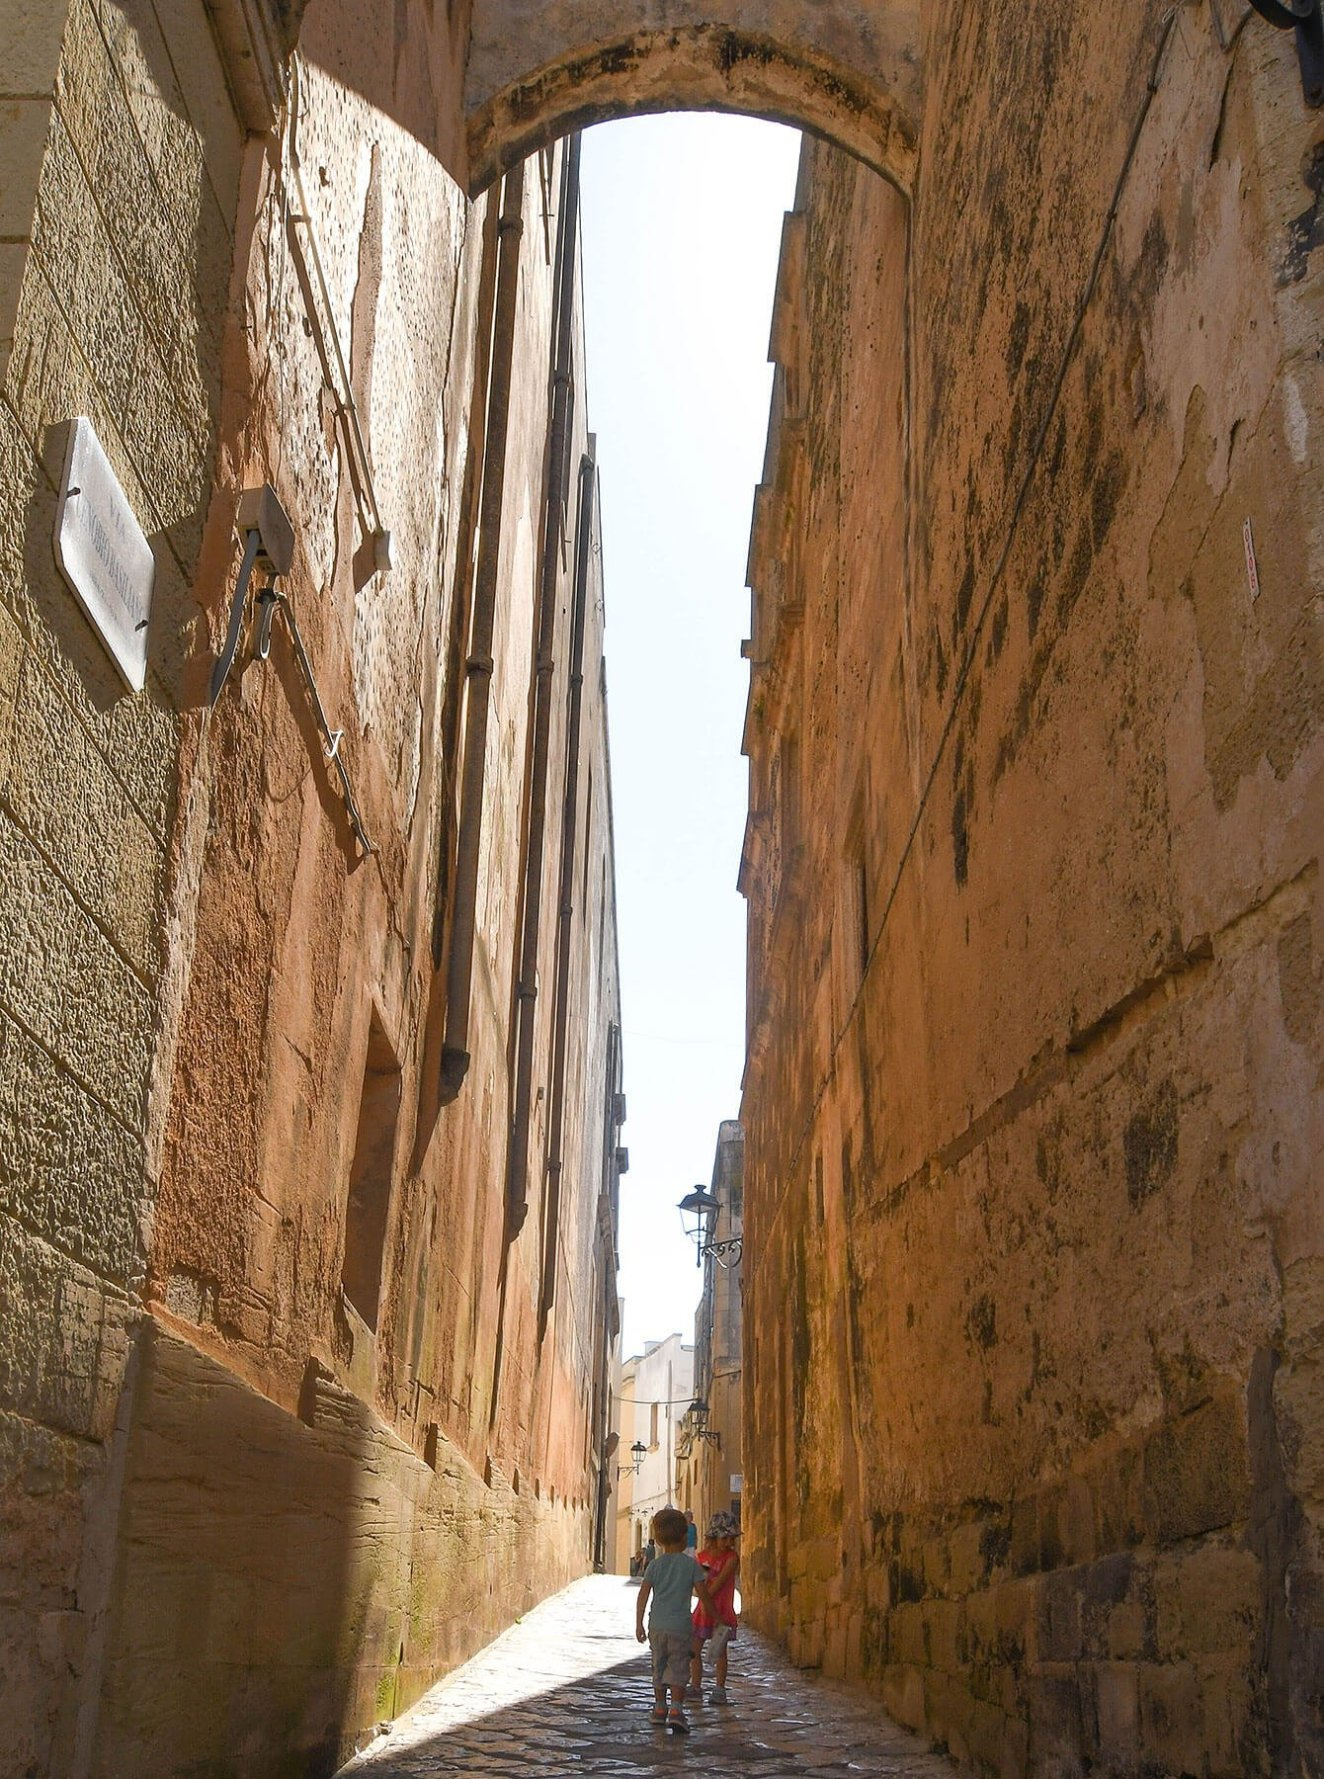 Narrowed Alley within Otranto's Old Town